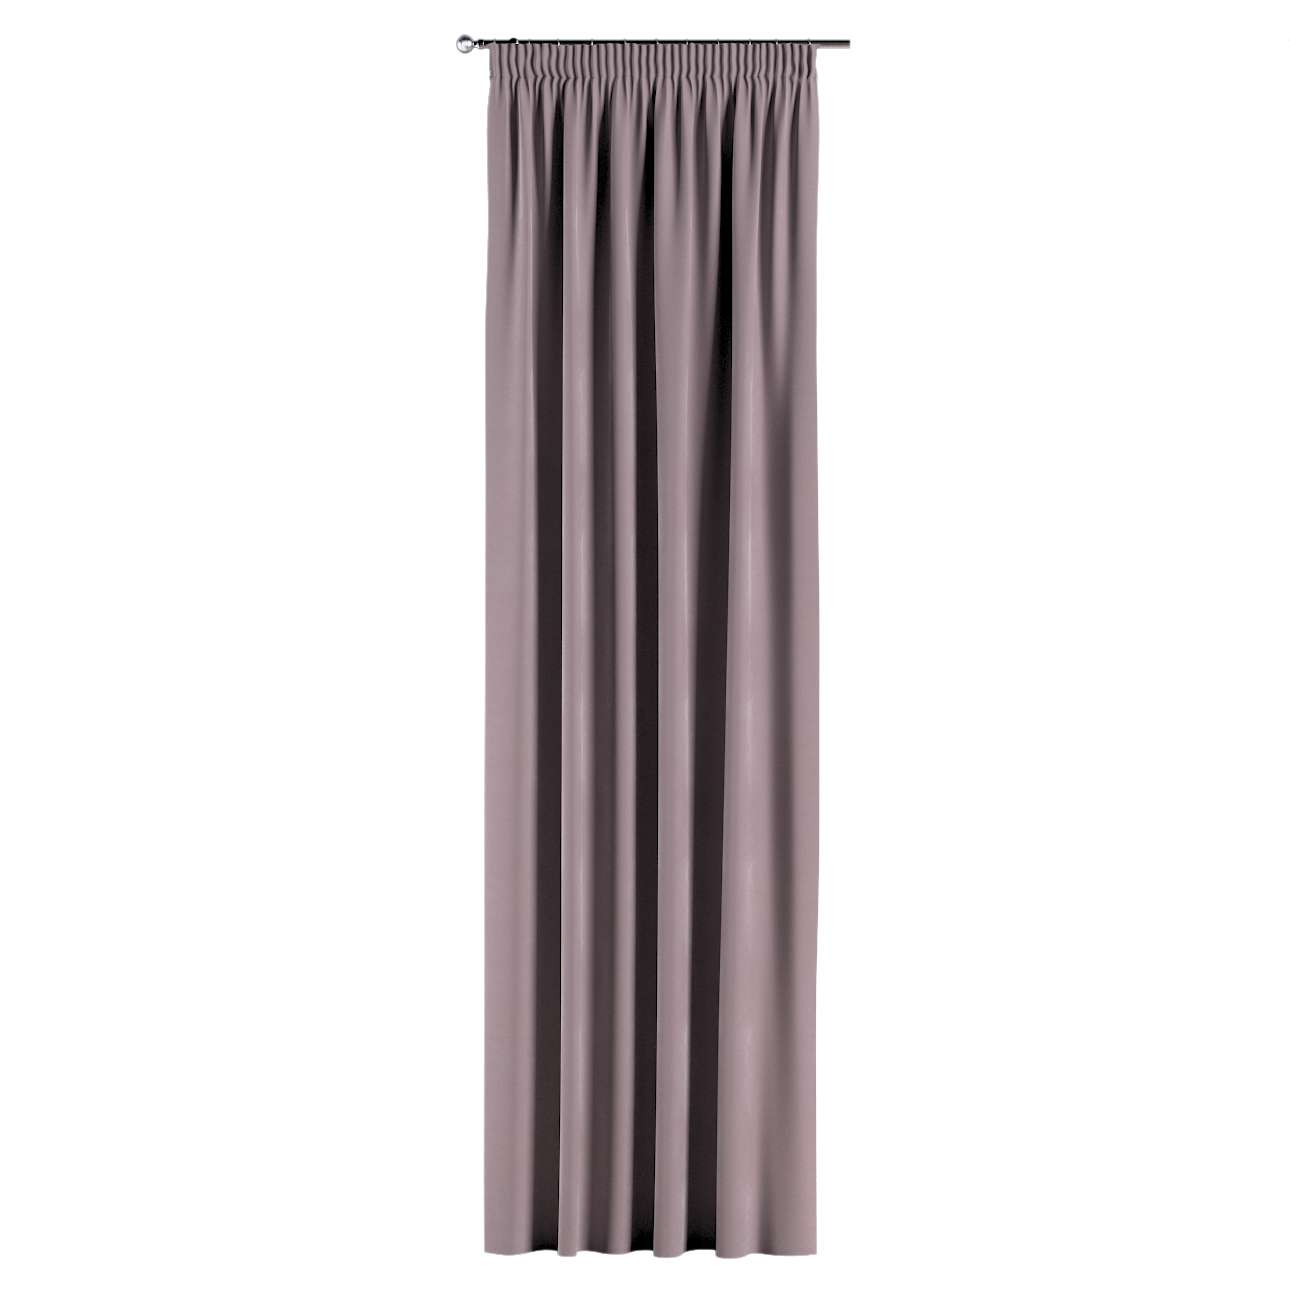 Pencil pleat curtains in collection Velvet, fabric: 704-14